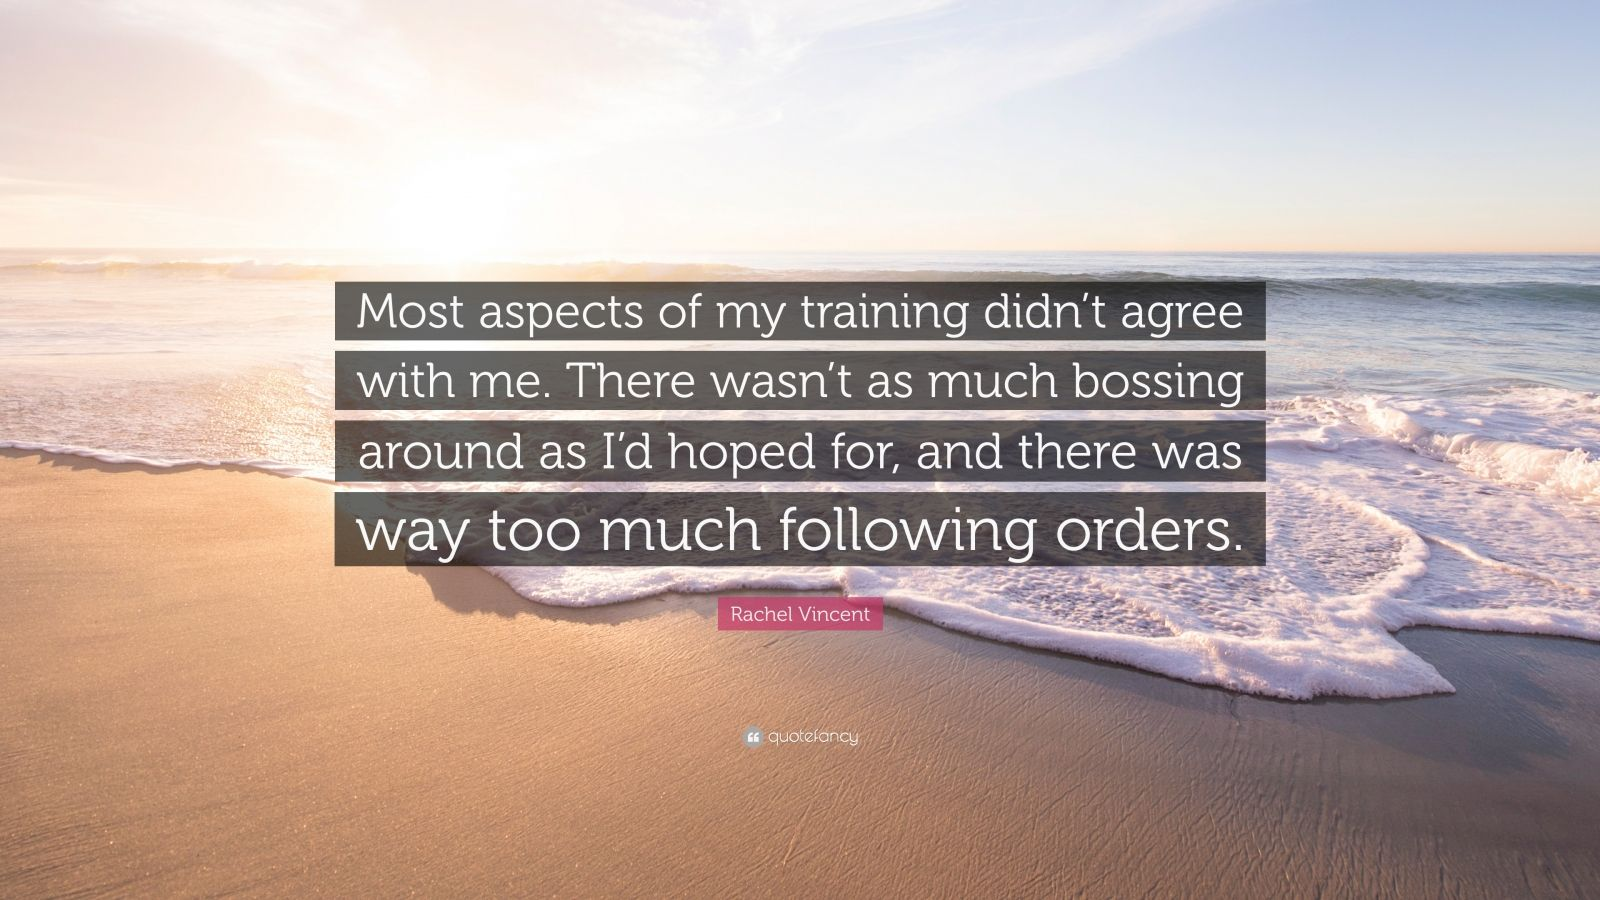 """Rachel Vincent Quote: """"Most aspects of my training didn't agree with me. There wasn't as much bossing around as I'd hoped for, and there was way too much following orders."""""""